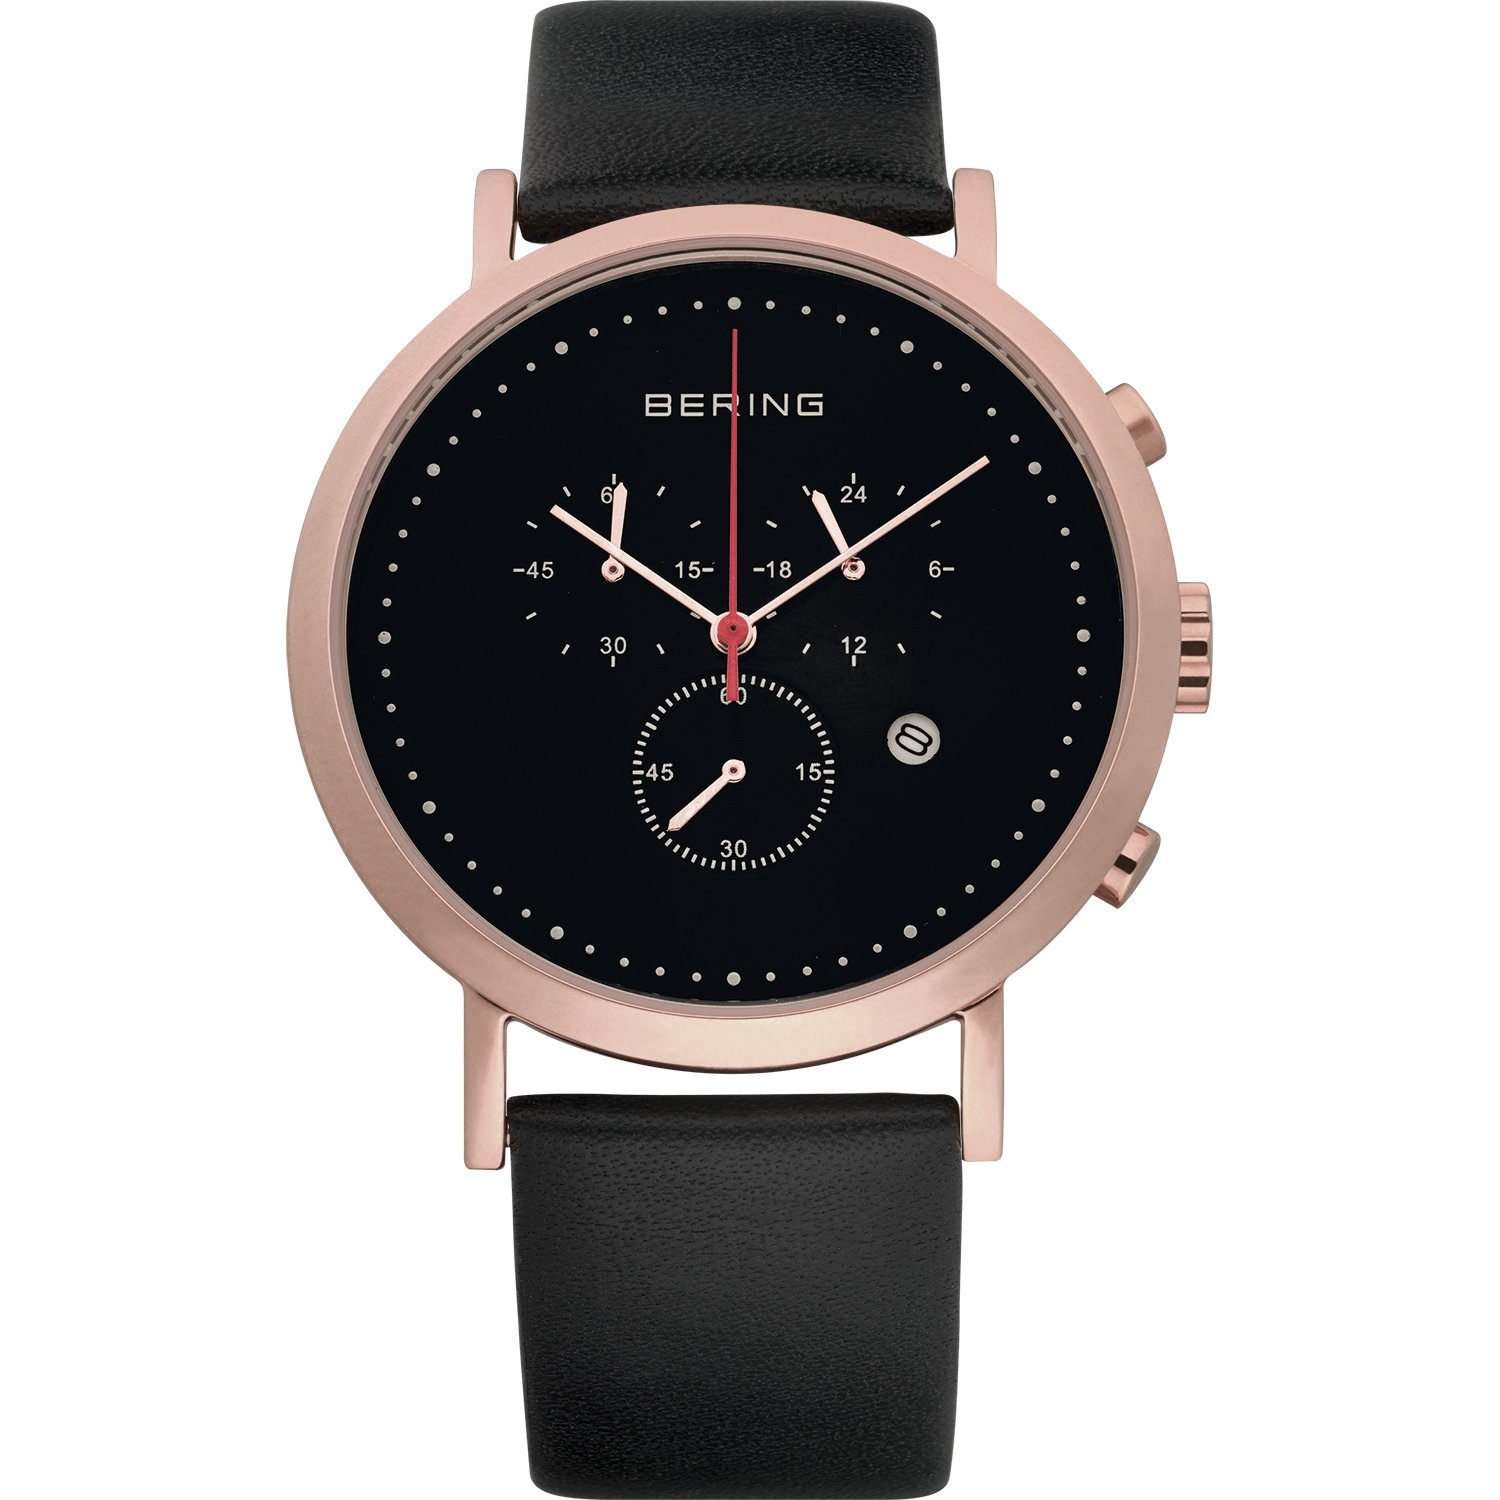 BERING Time 10540-462 Classic Collection Watch with Calfskin Band and Scratch Resistant Sapphire Crystal. Designed in Denmark.